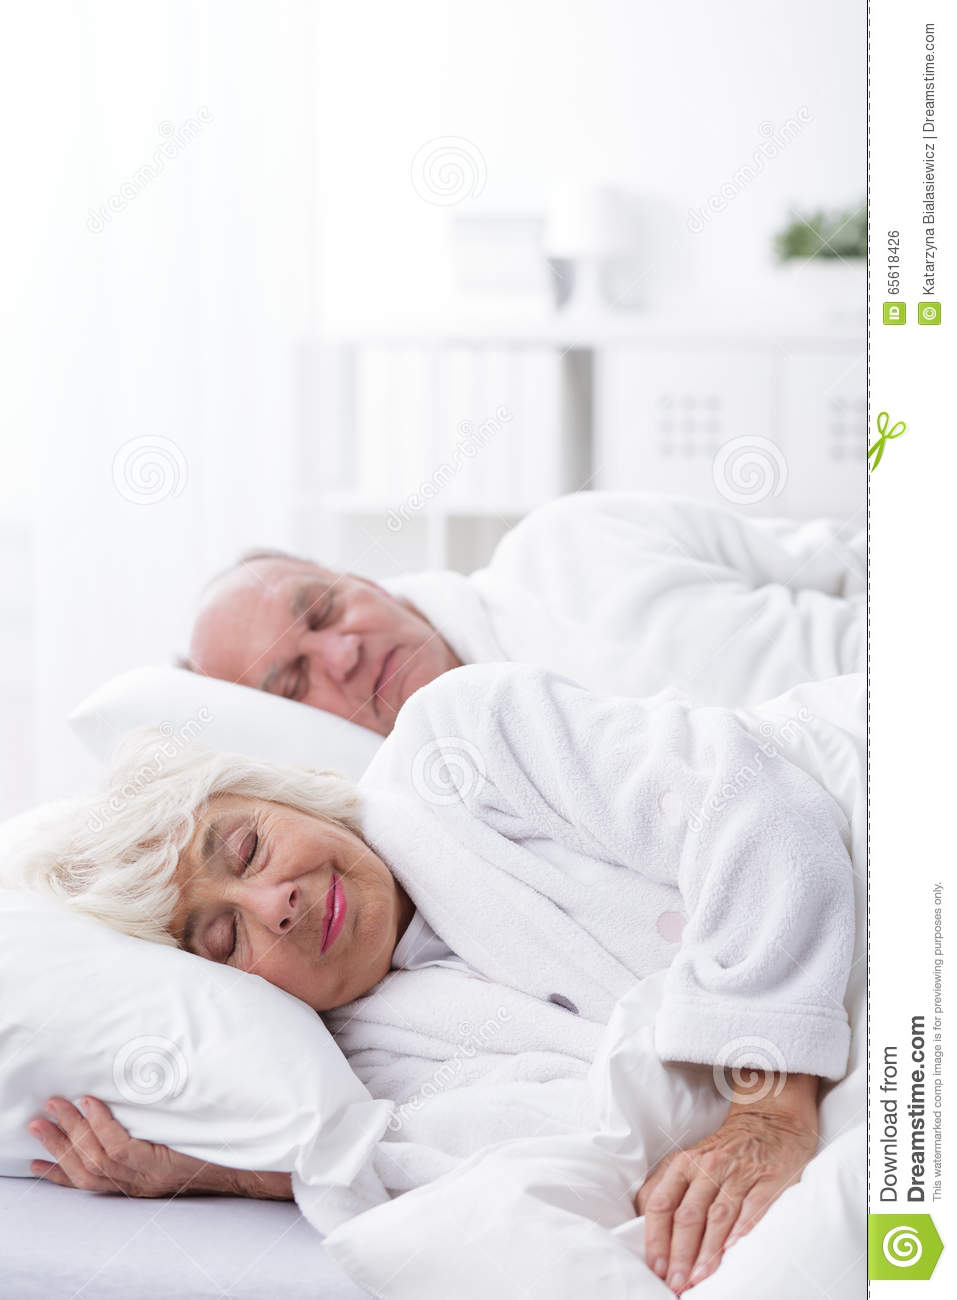 Aged Marriage Sleeping Together Stock Photo - Image of wife ...